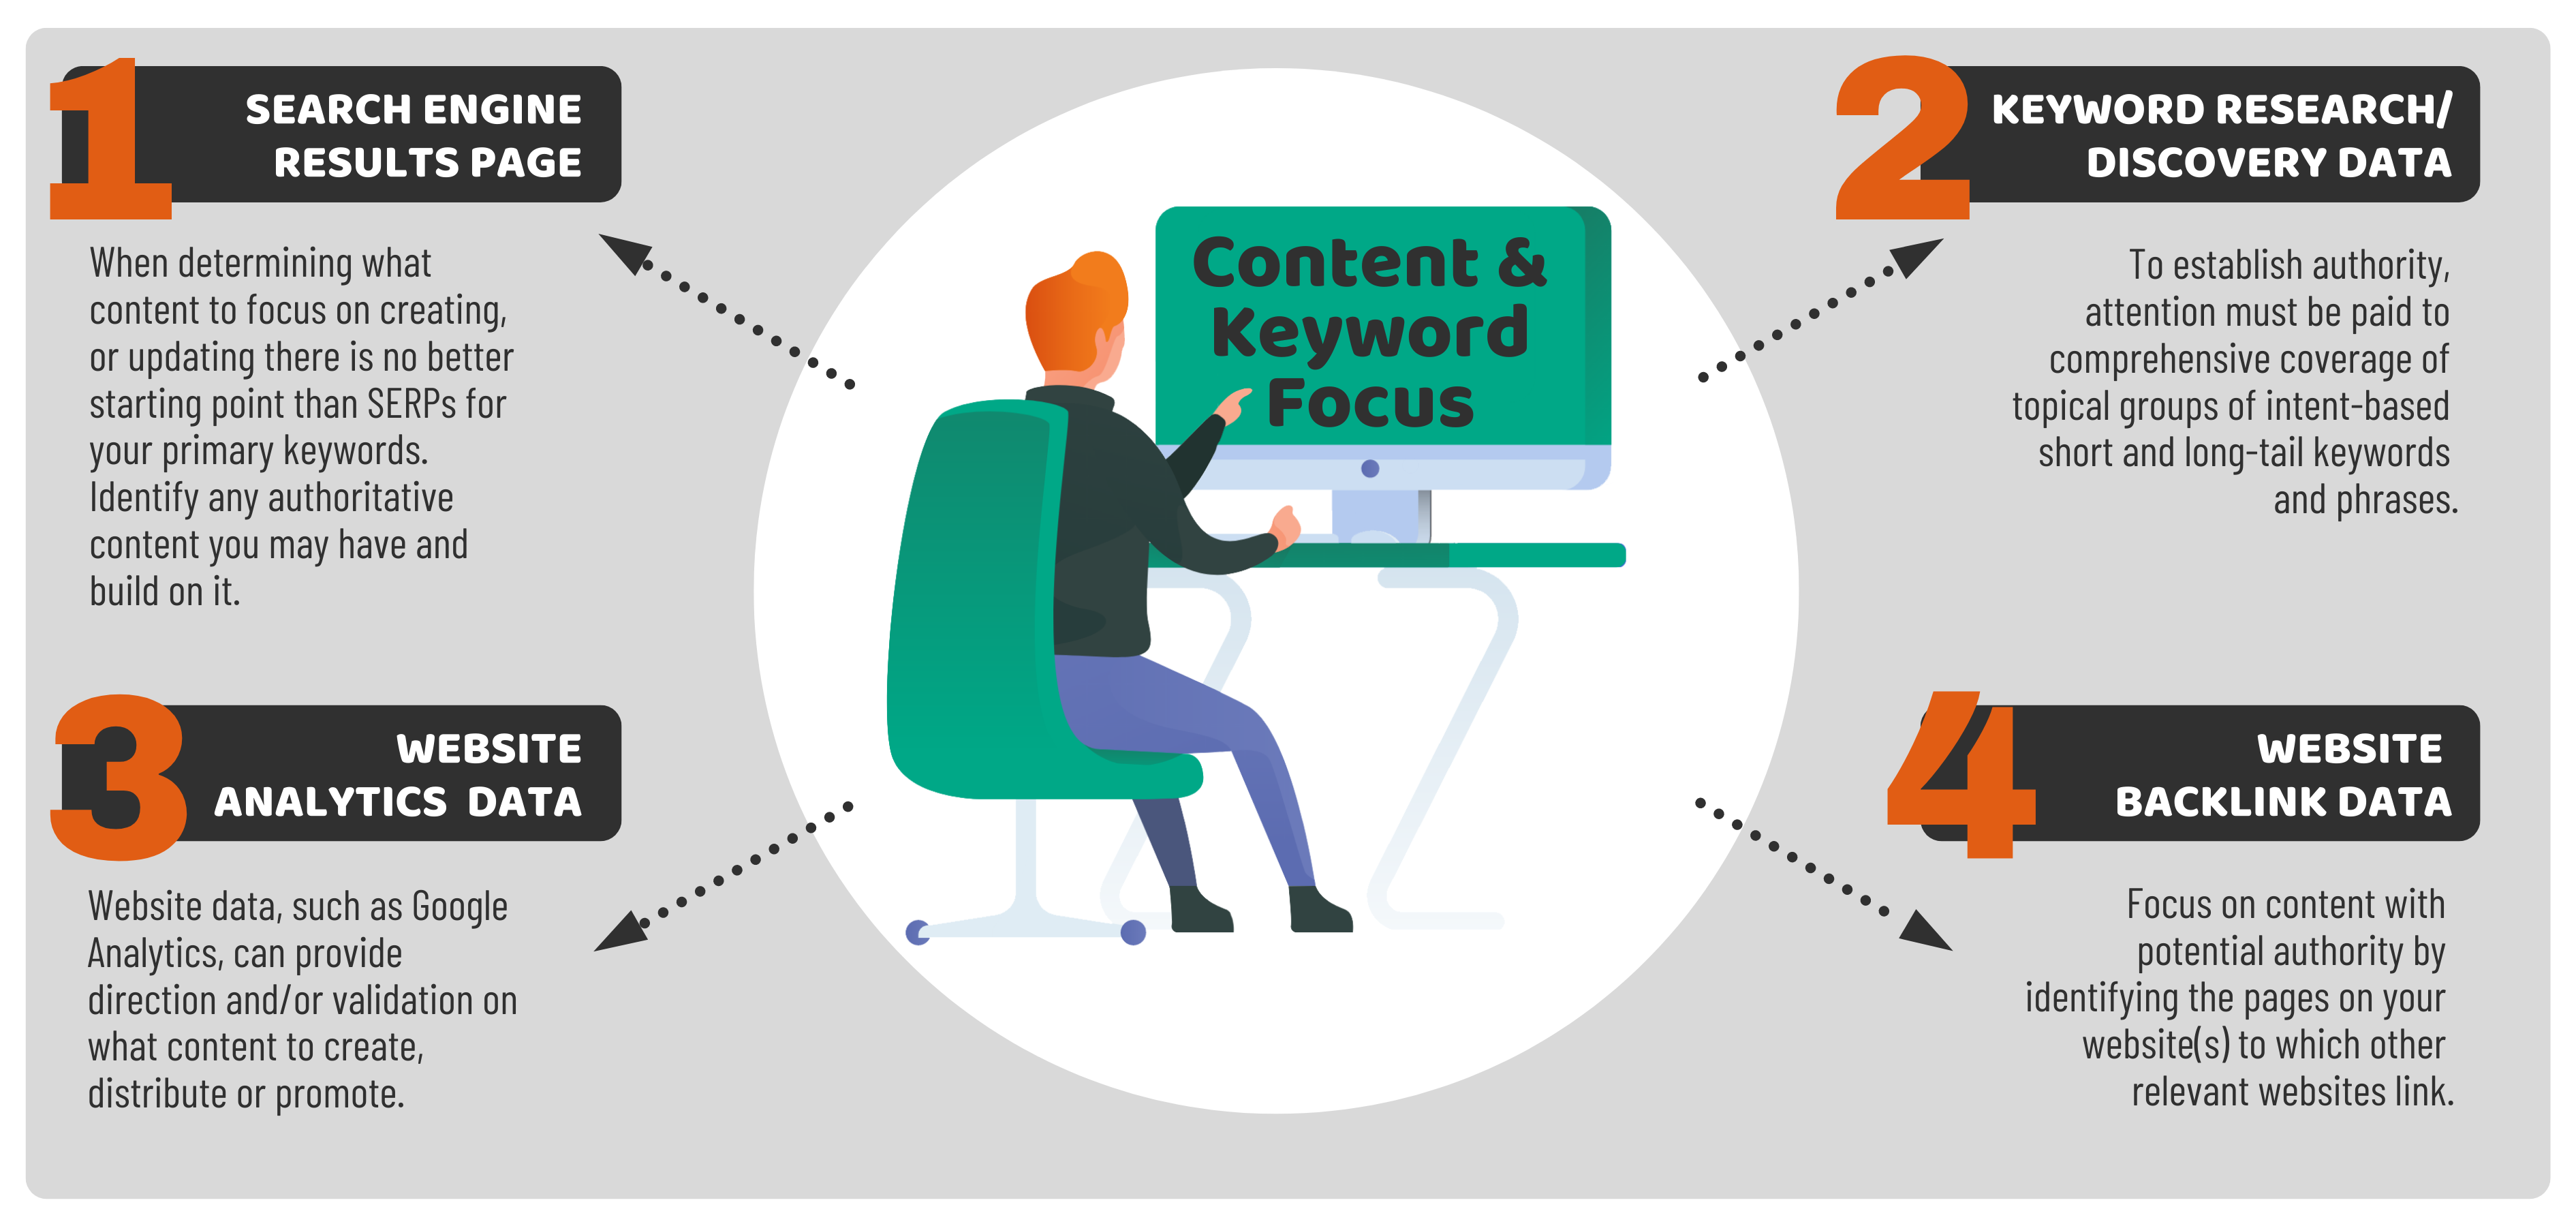 Four Data Sources to Help Focus Content and Keywords